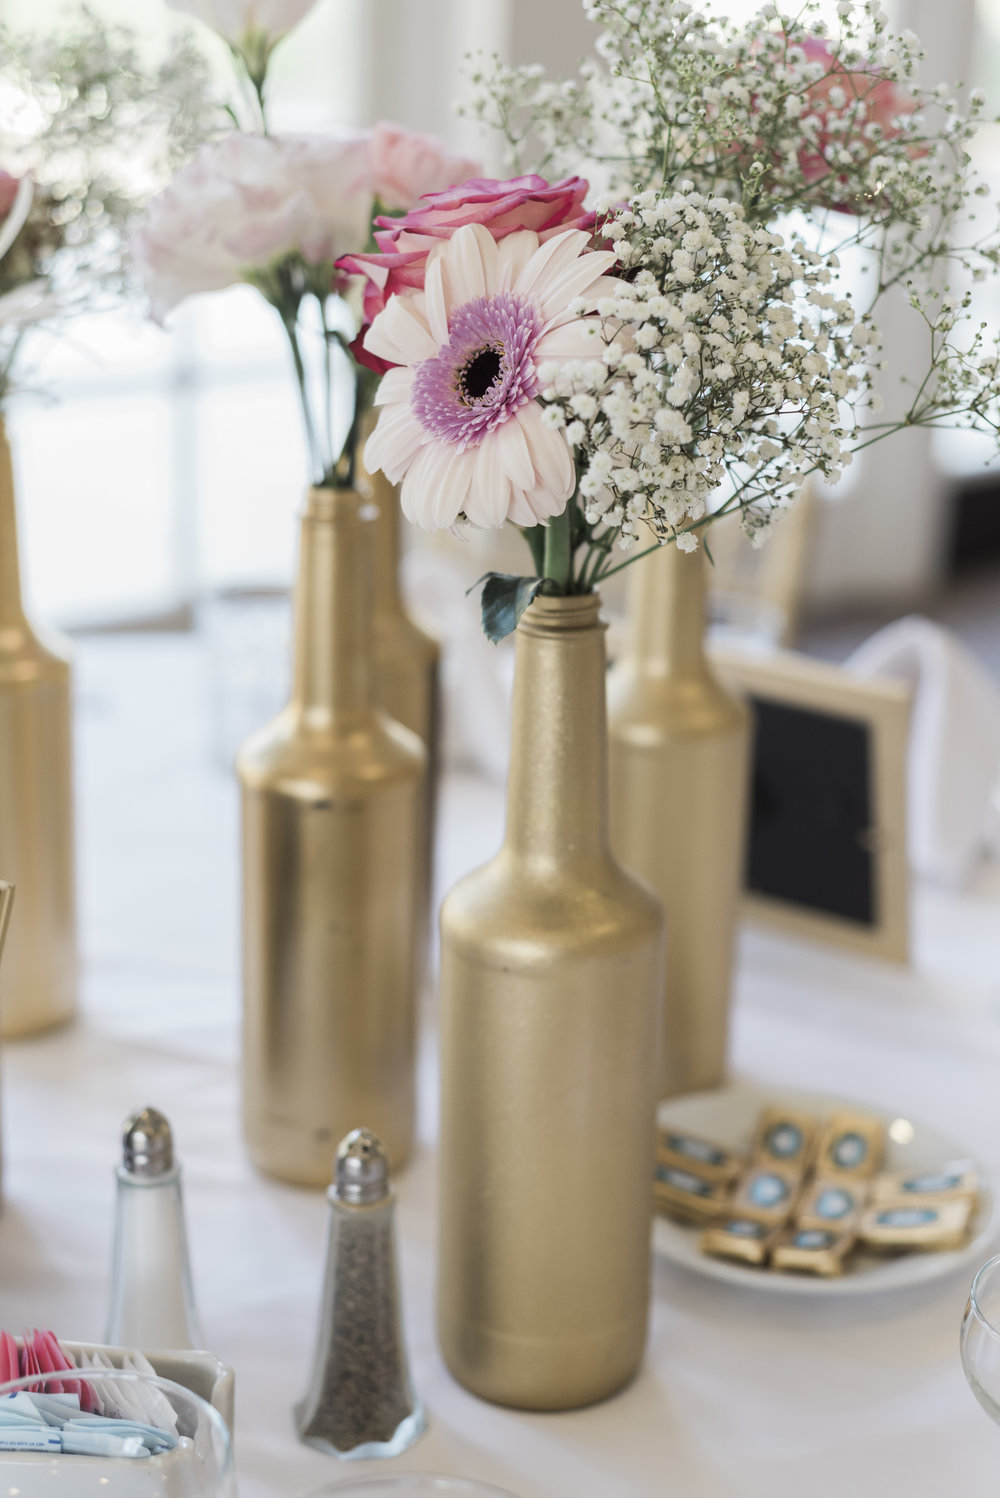 flower-vases-on-a-reception-table.jpg